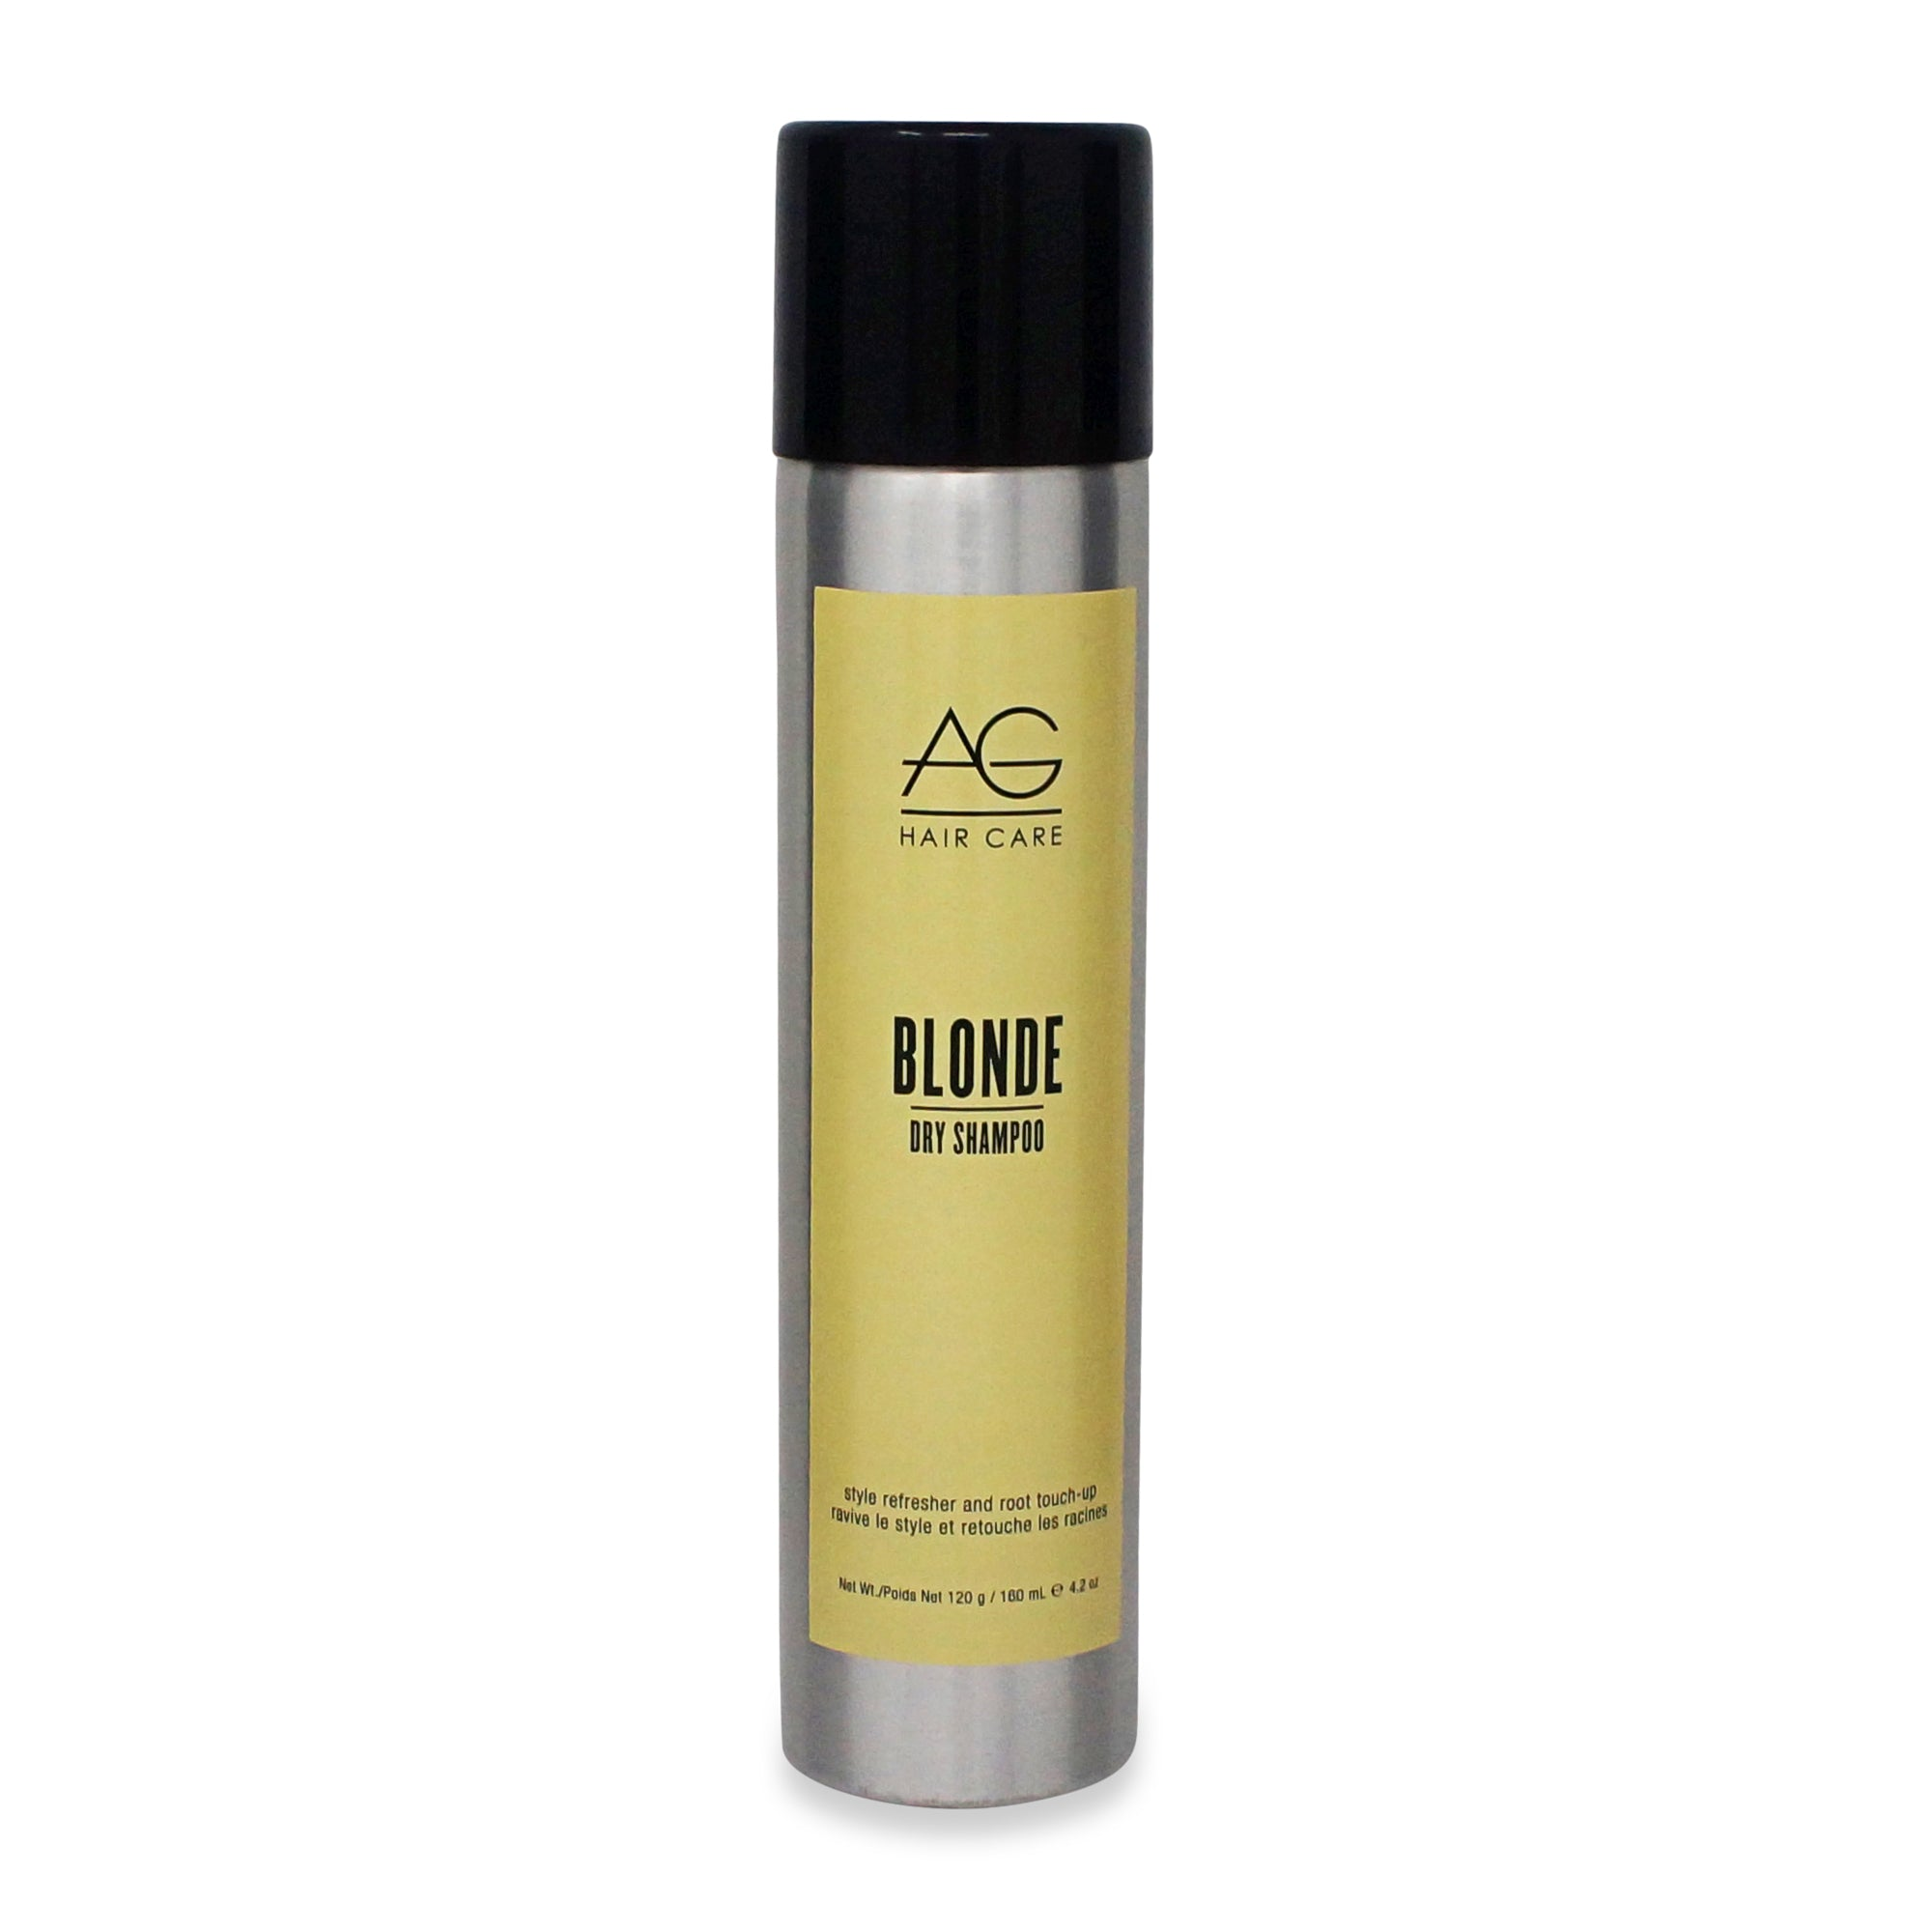 AGHAIR ~ DRY SHAMPOO ~ BLONDE STYLE REFRESHER AND ROOT TOUCH-UP